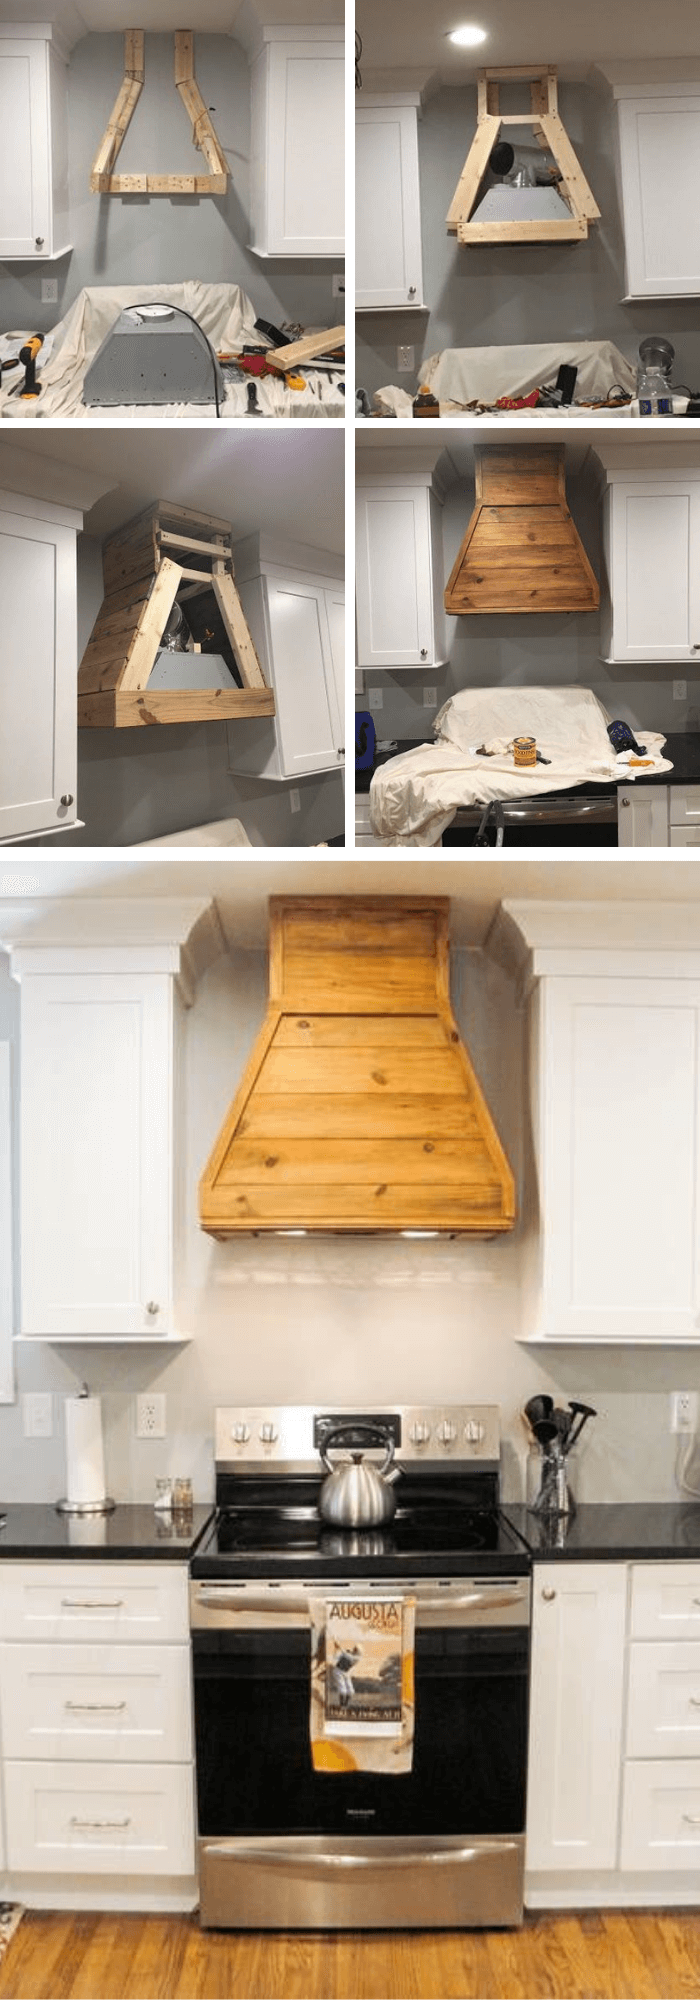 Kitchen Decor Projects With Reclaimed Wood Reclaimed Wood Vent Hood